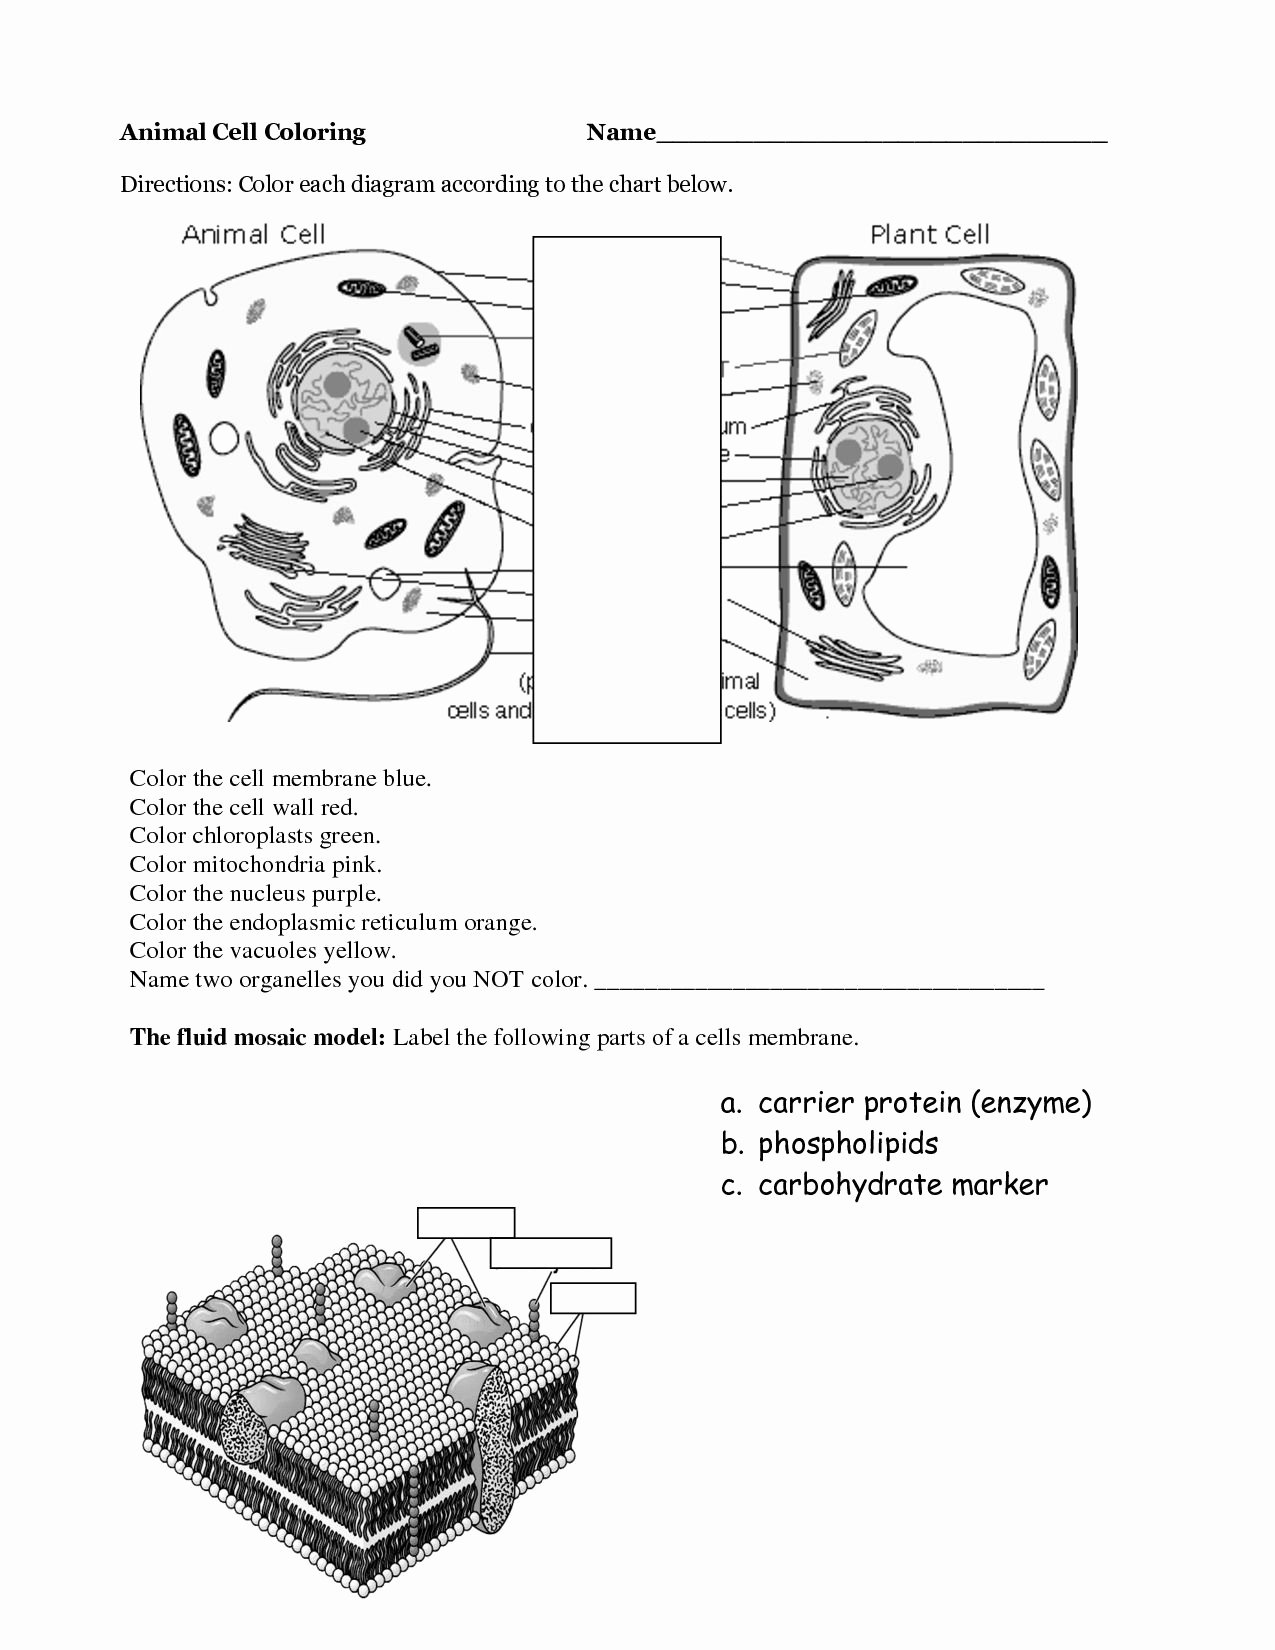 Animal Cells Coloring Worksheet Awesome Animal Cell Coloring Page Coloring Home